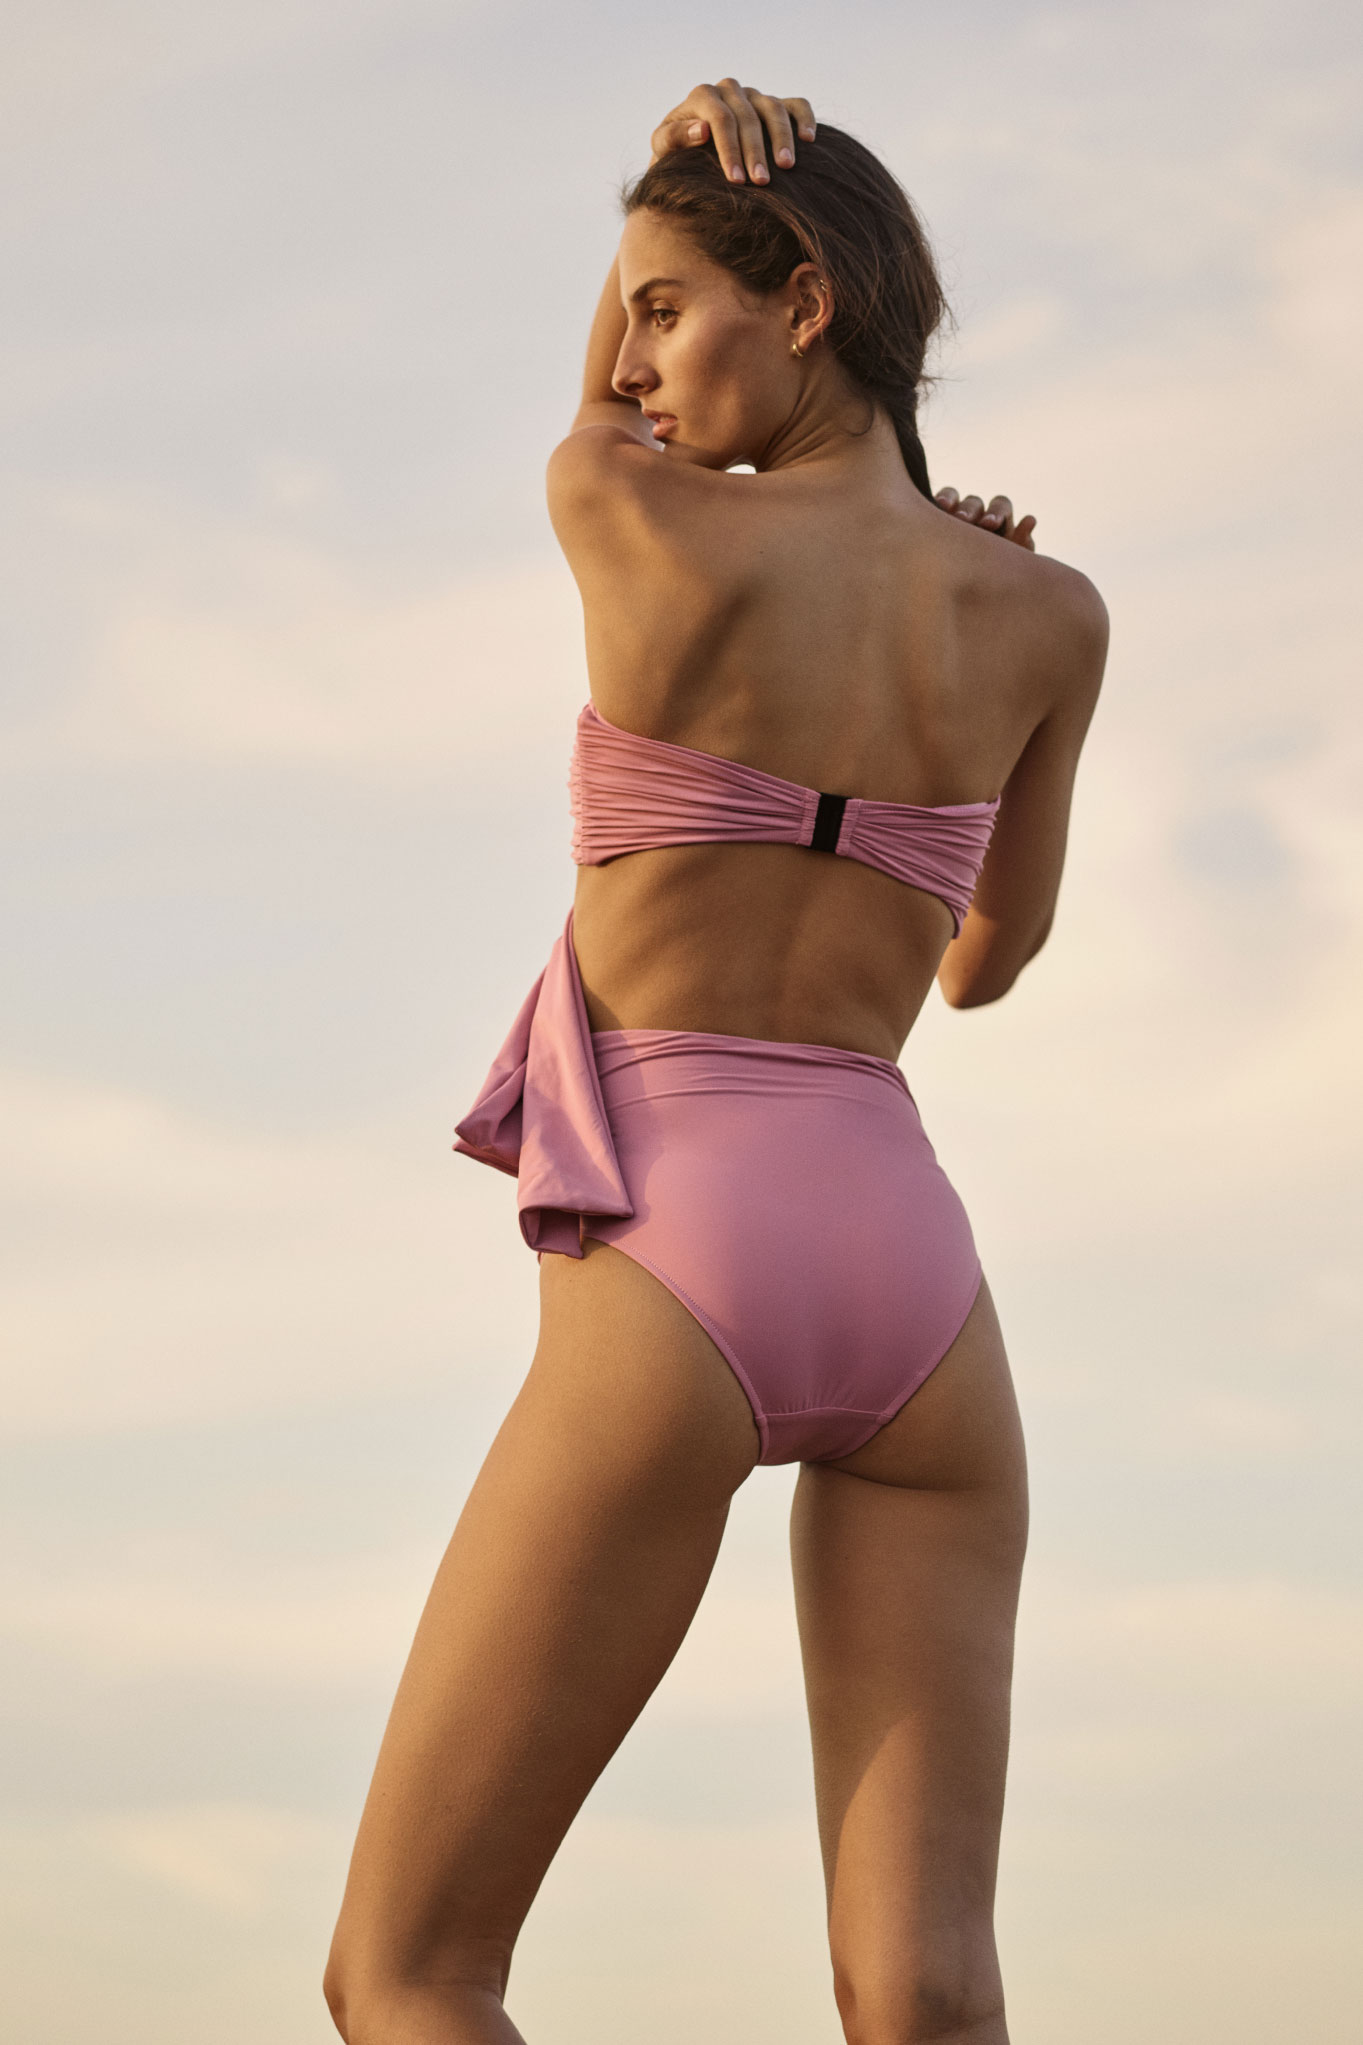 BONDI BORN's Knots Collection in Black and Pink features the Neve Bikini top and Penelope Bottom with over sized knots.